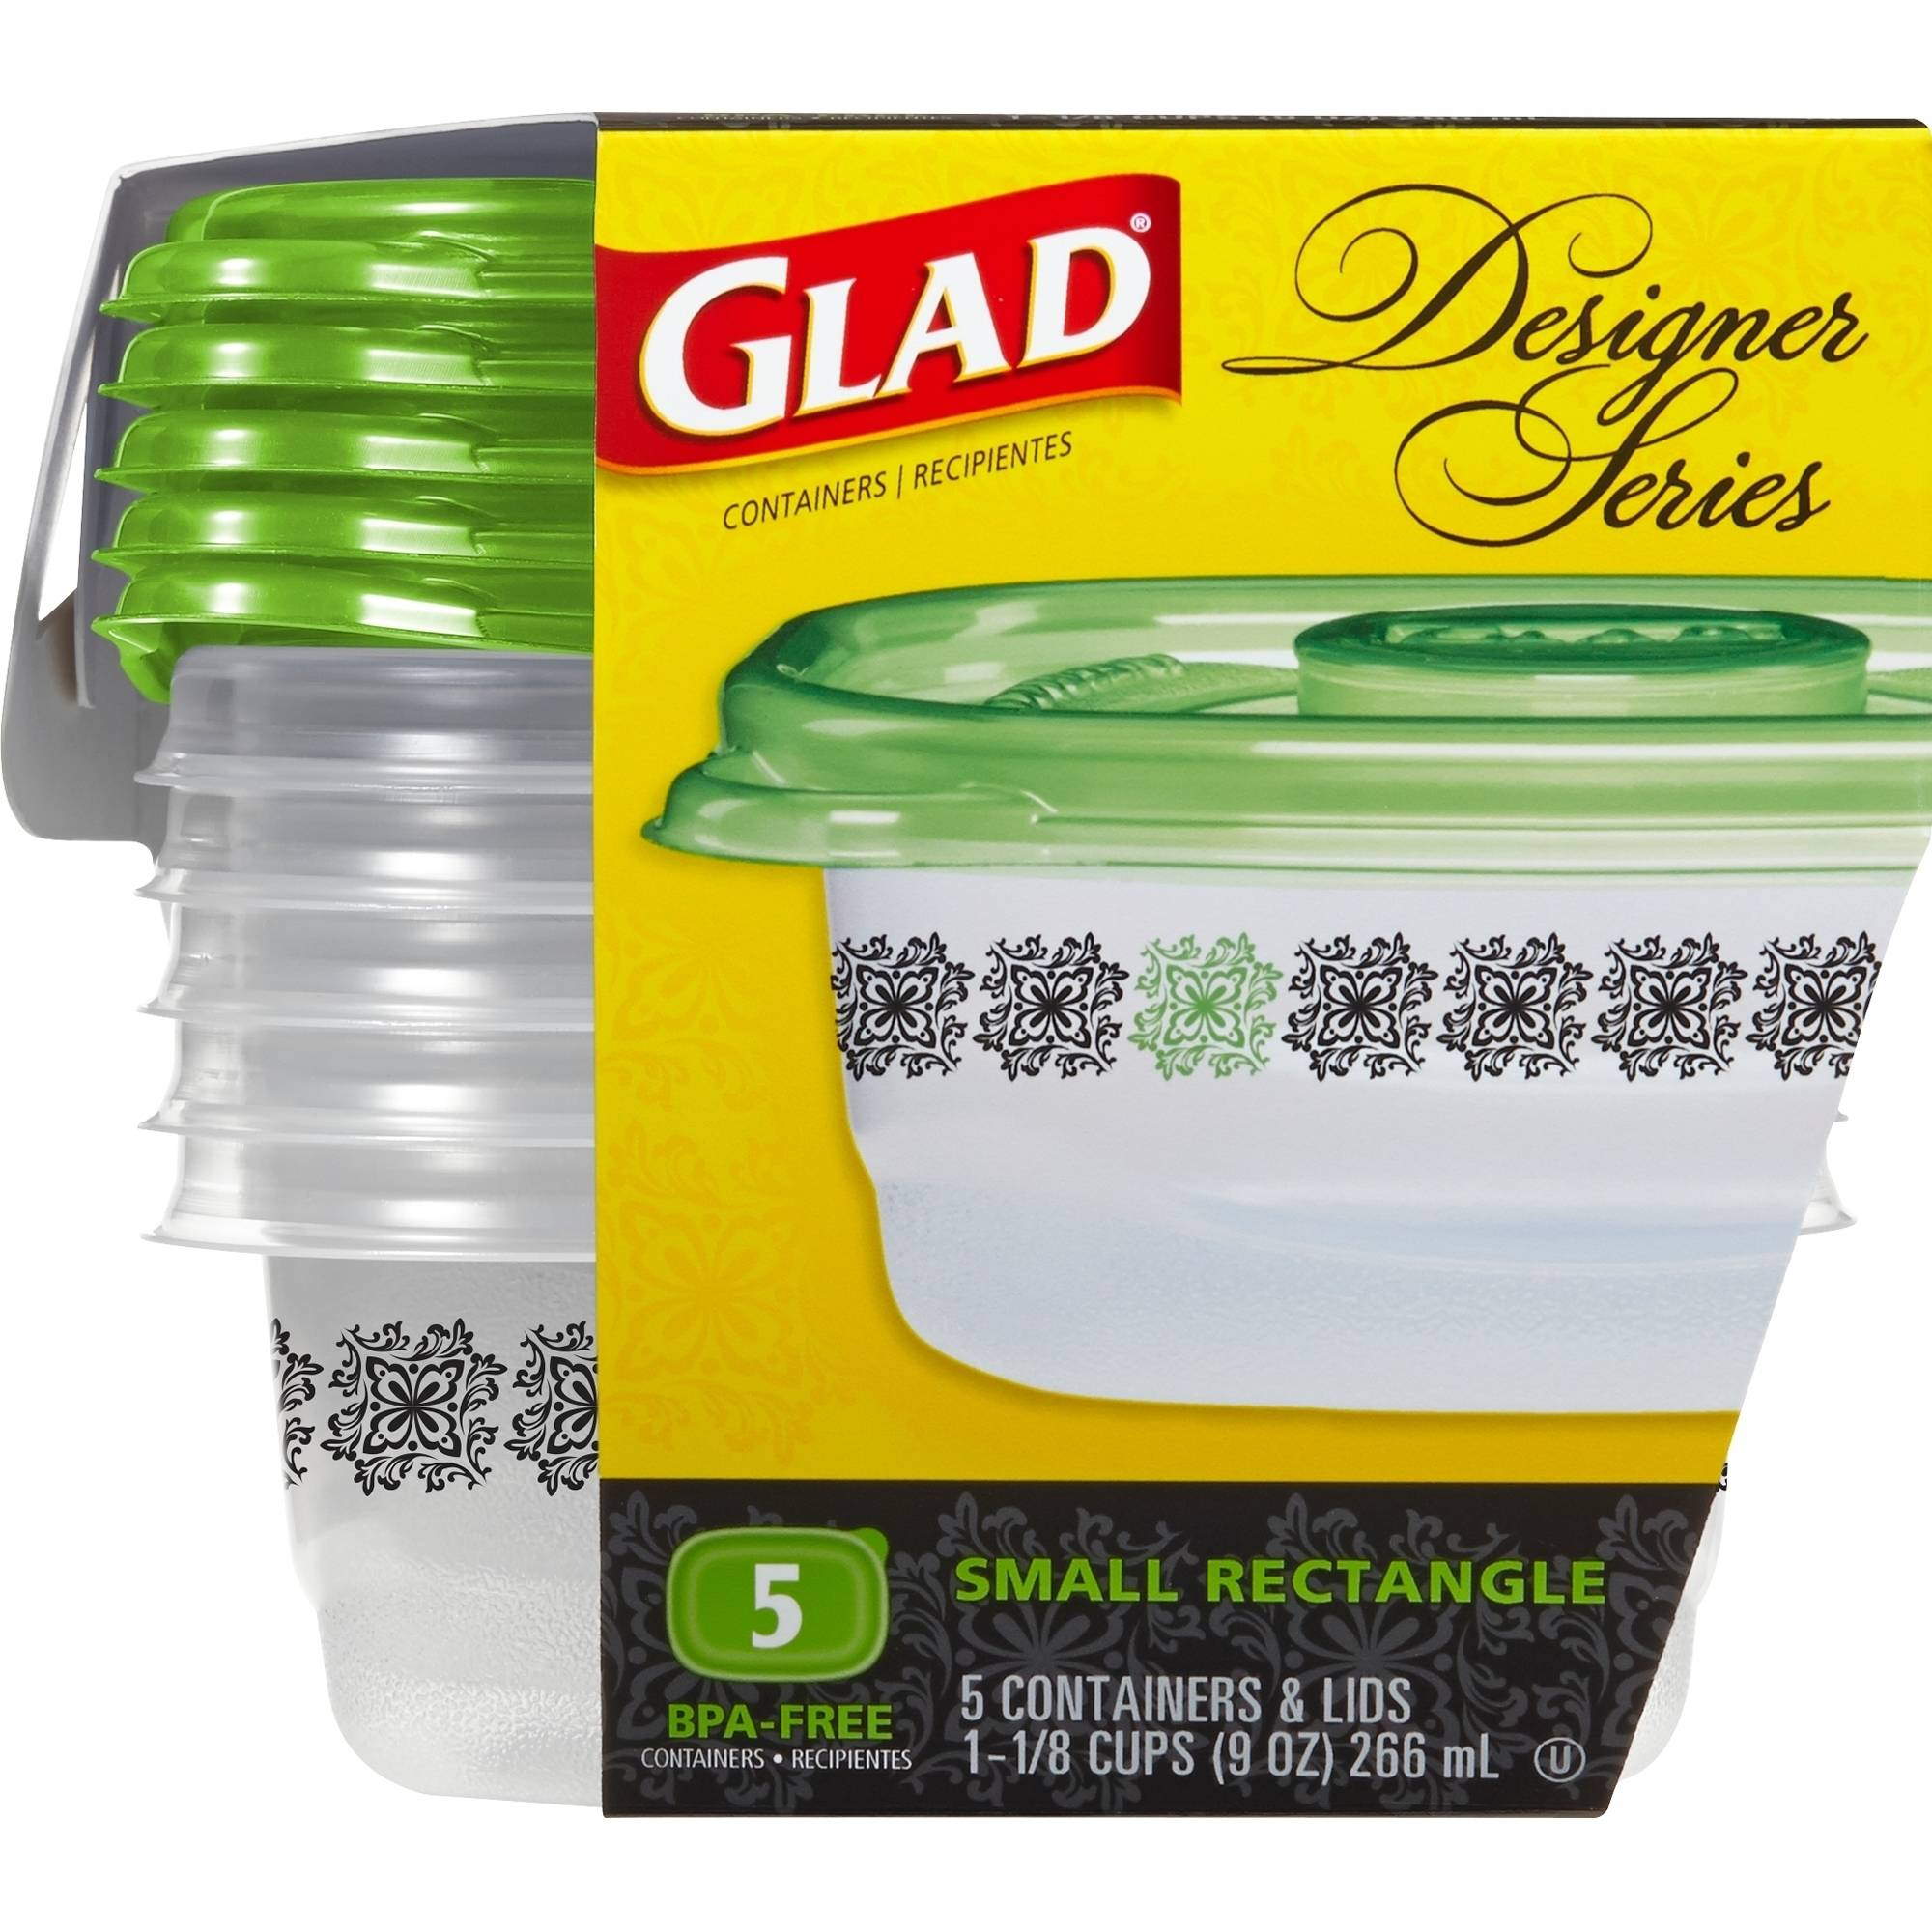 Glad Design Series Small Rectangle Food Storage Containers, 5 count, BPA Free